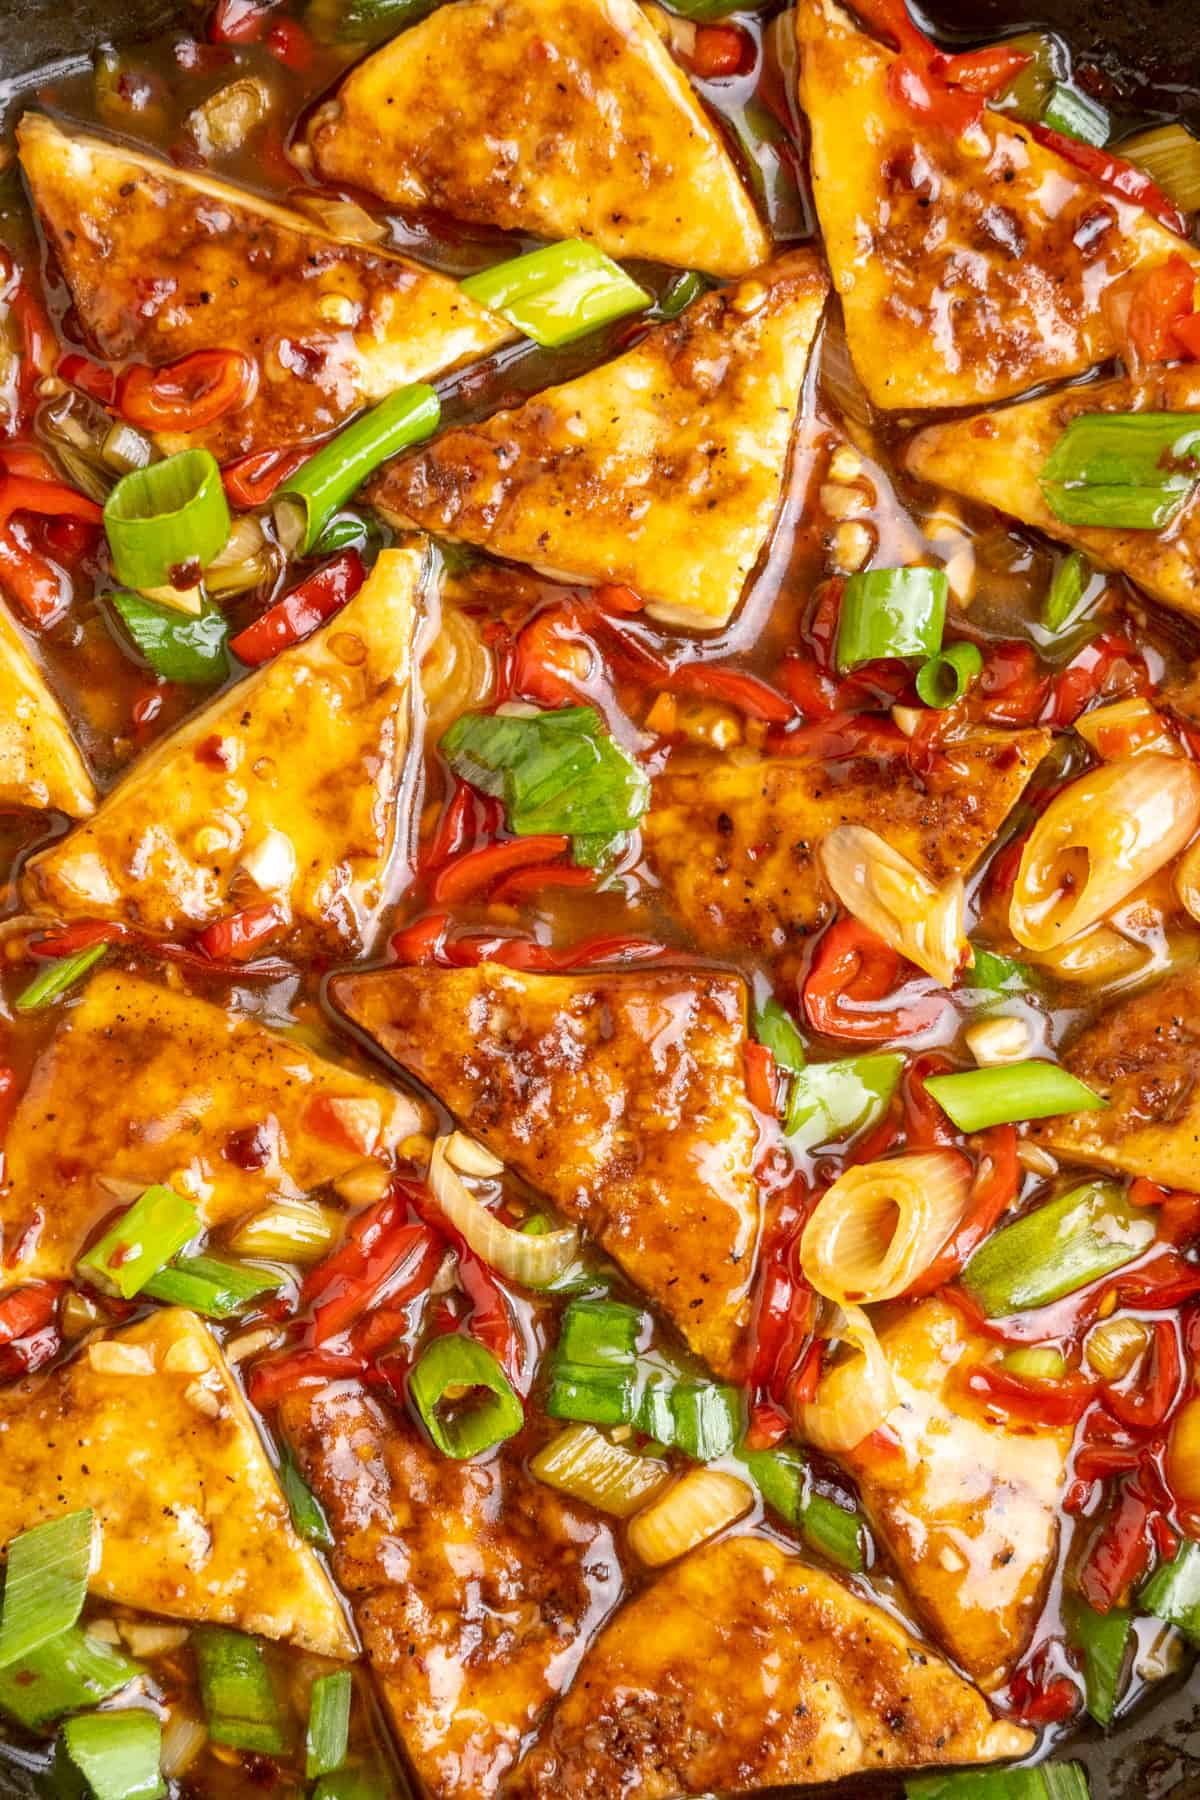 Pieces of golden fried tofu in a glossy sauce with pieces of spring onion and thinly sliced red pepper.